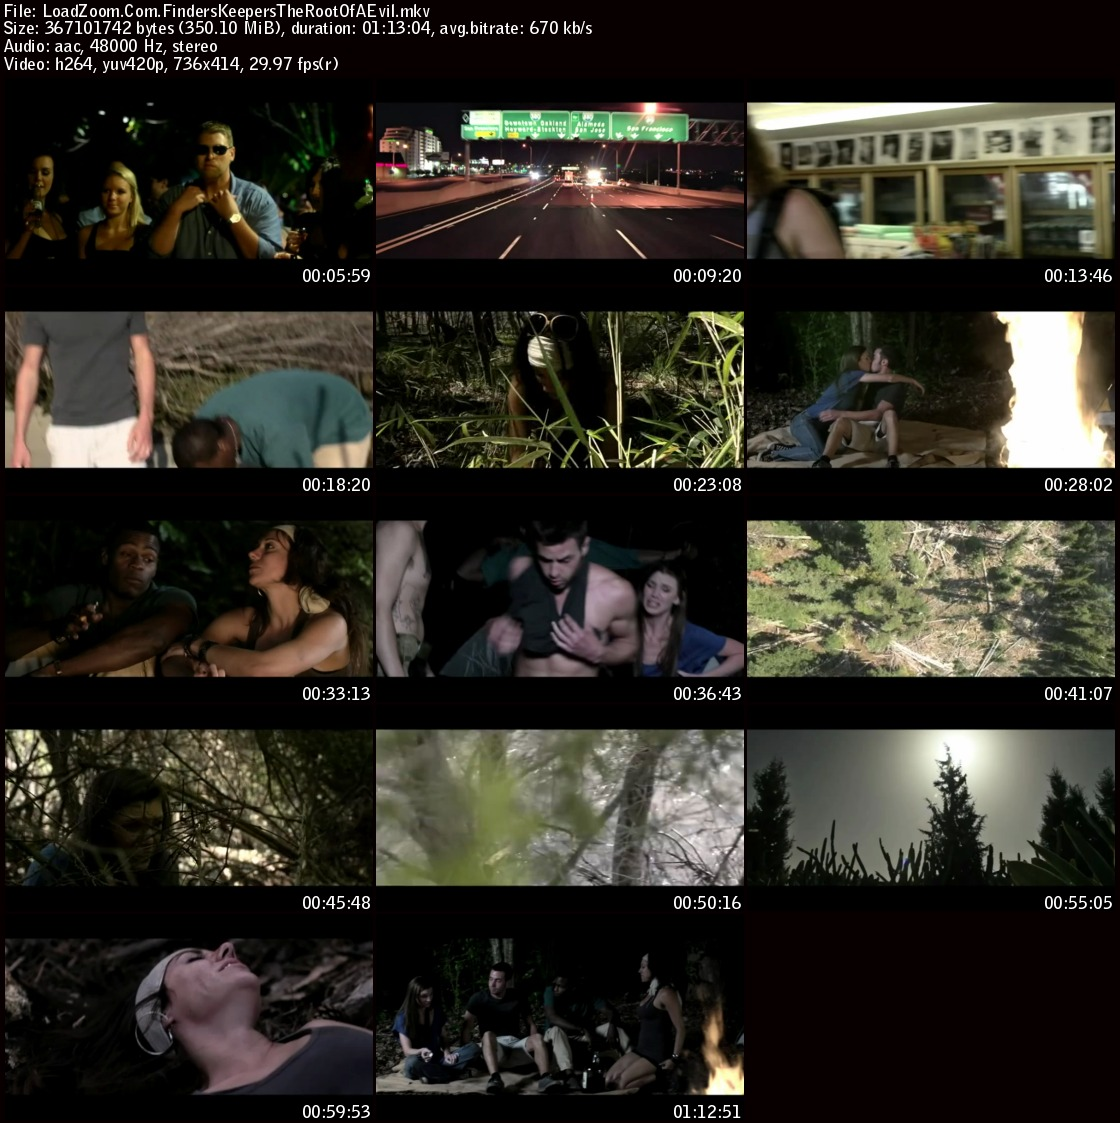 movie screenshot of Finders Keepers The Root of All Evil fdmovie.com